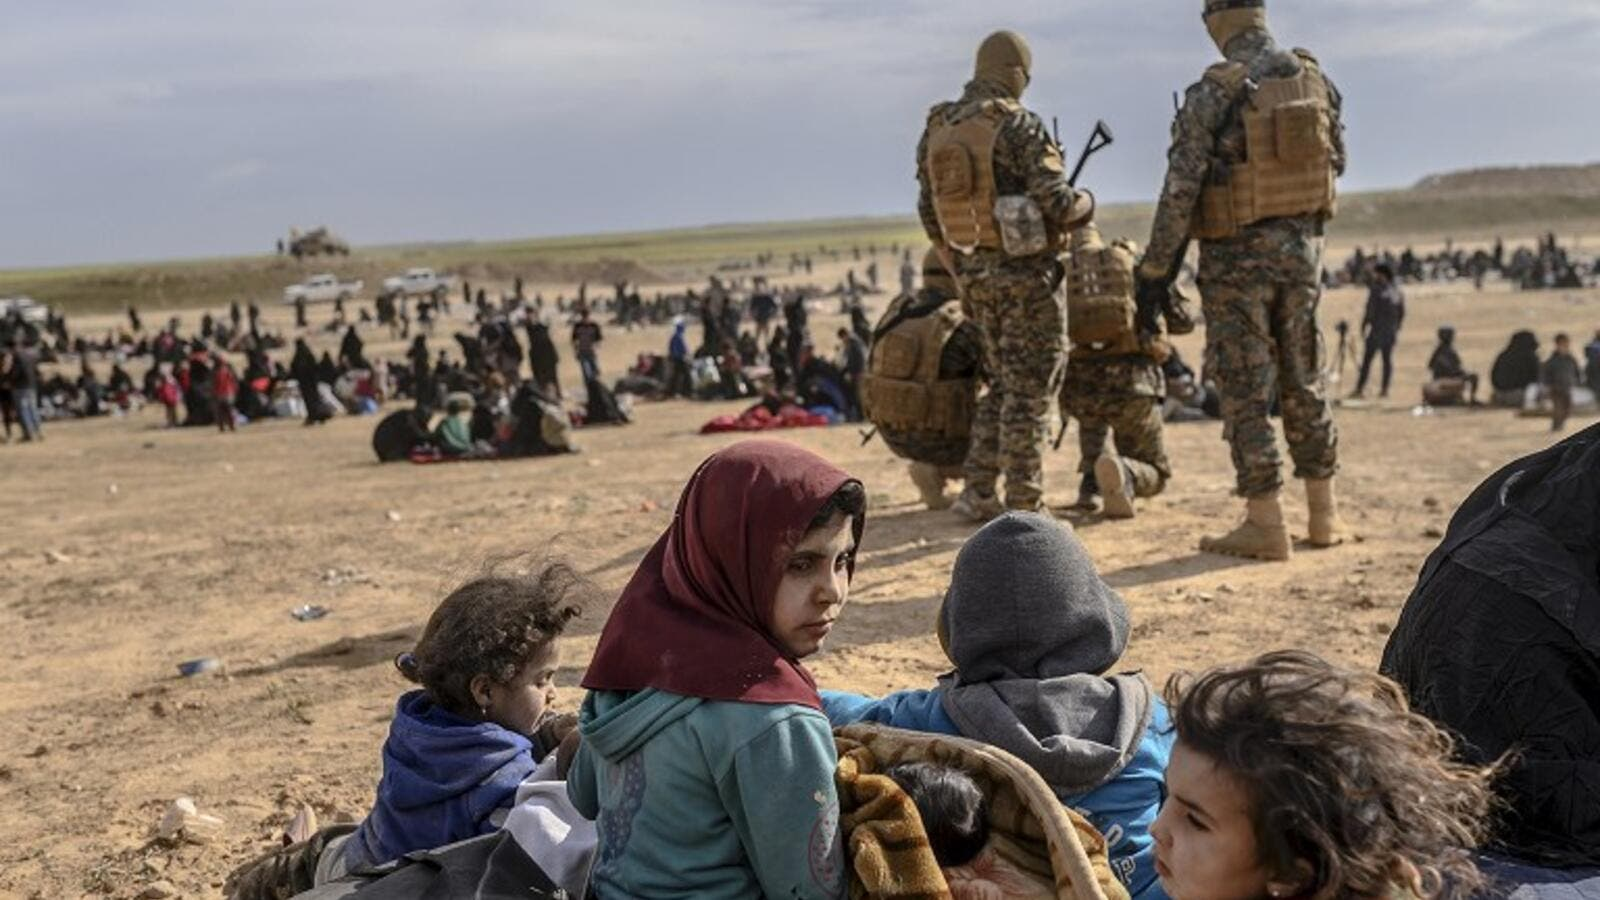 Civilians evacuated from the Islamic State (IS) group's embattled holdout of Baghouz, in the eastern Syrian province of Deir Ezzor. (Bulent KILIC / AFP)